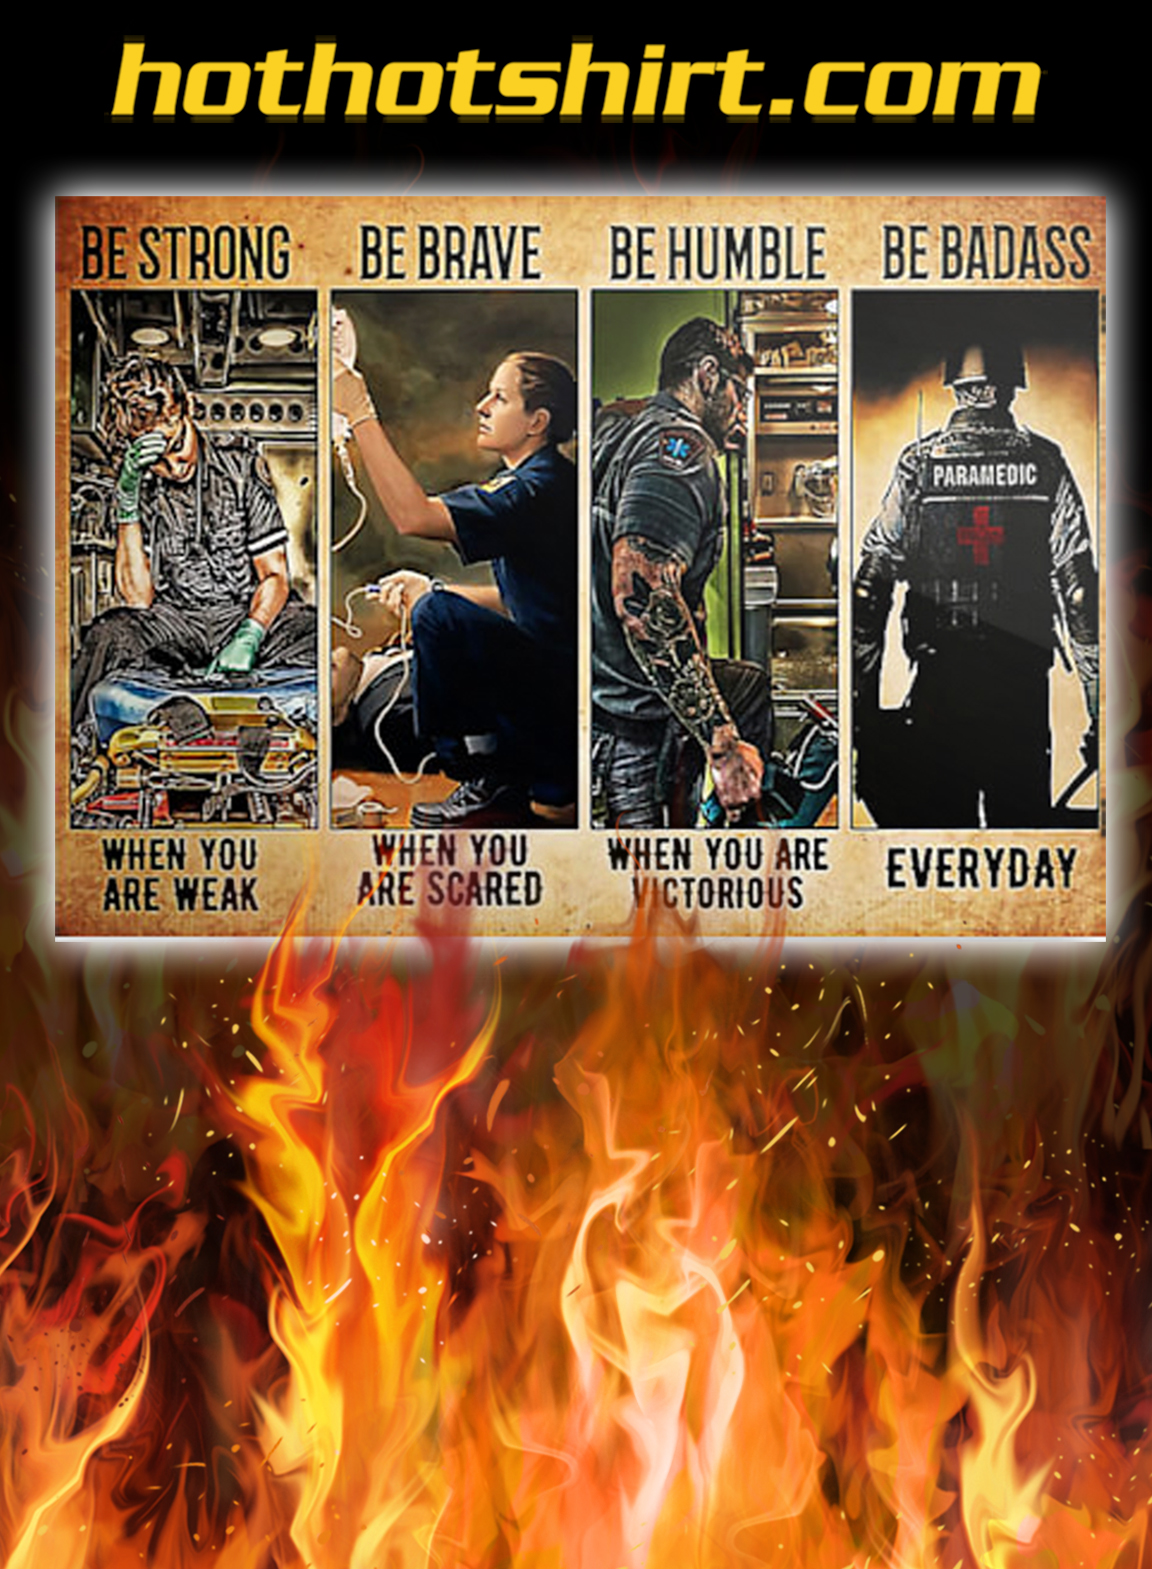 Rescue Paramedic be strong be brave be humble be badass poster - A2